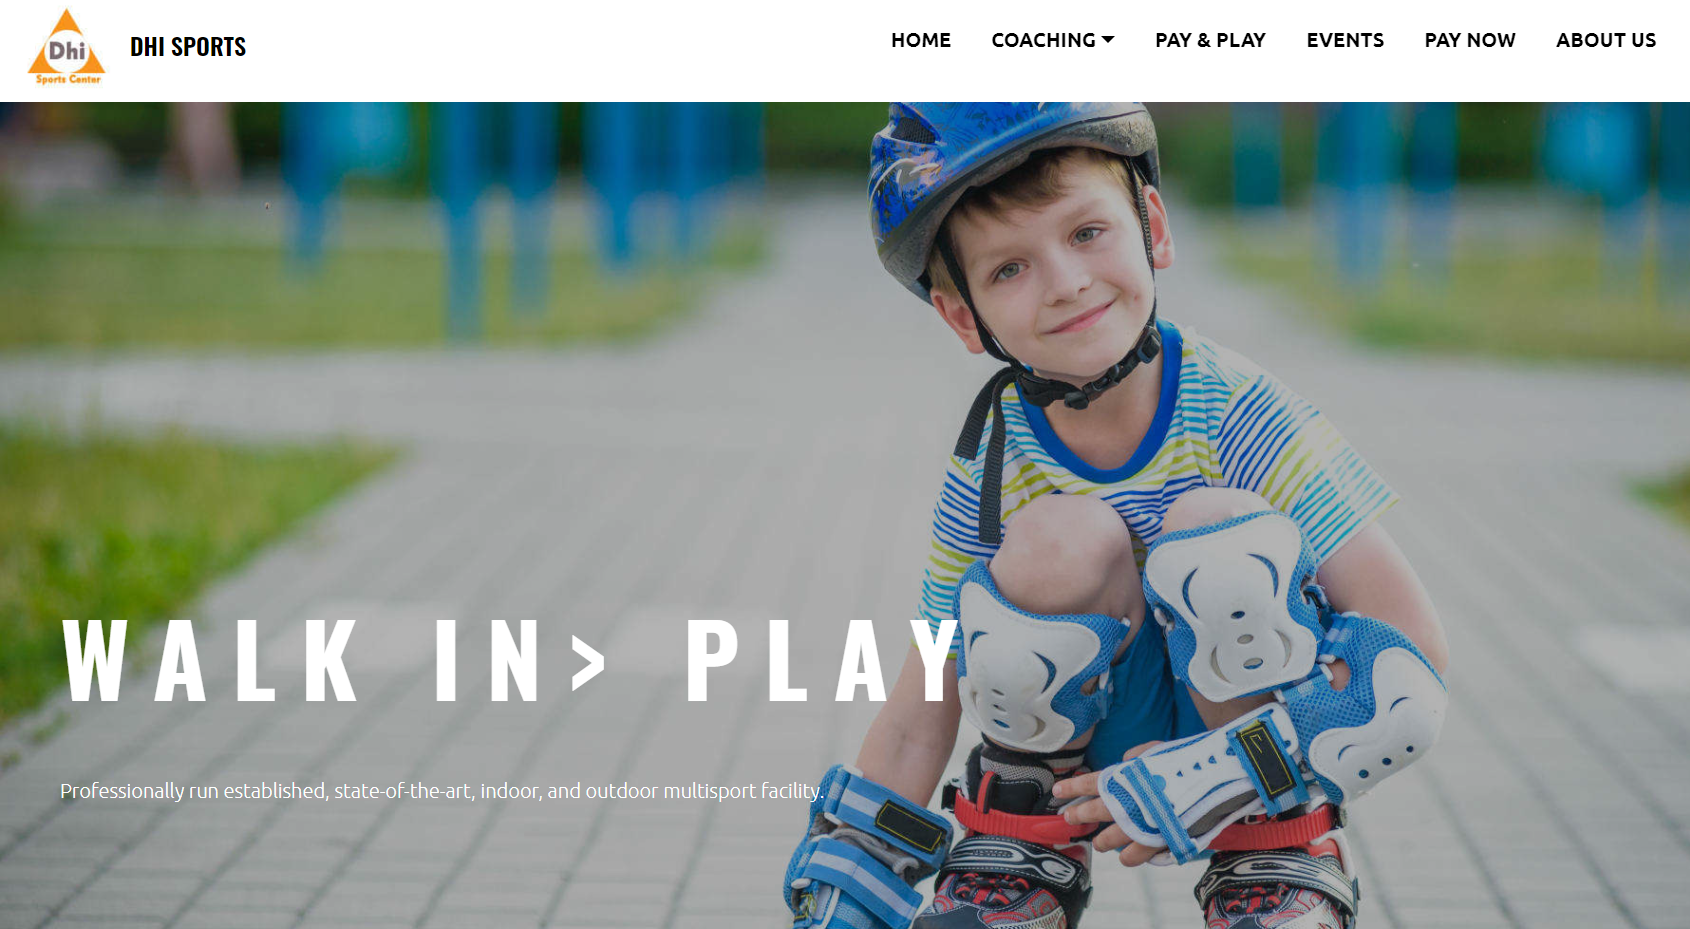 An homepage example of a sports academy